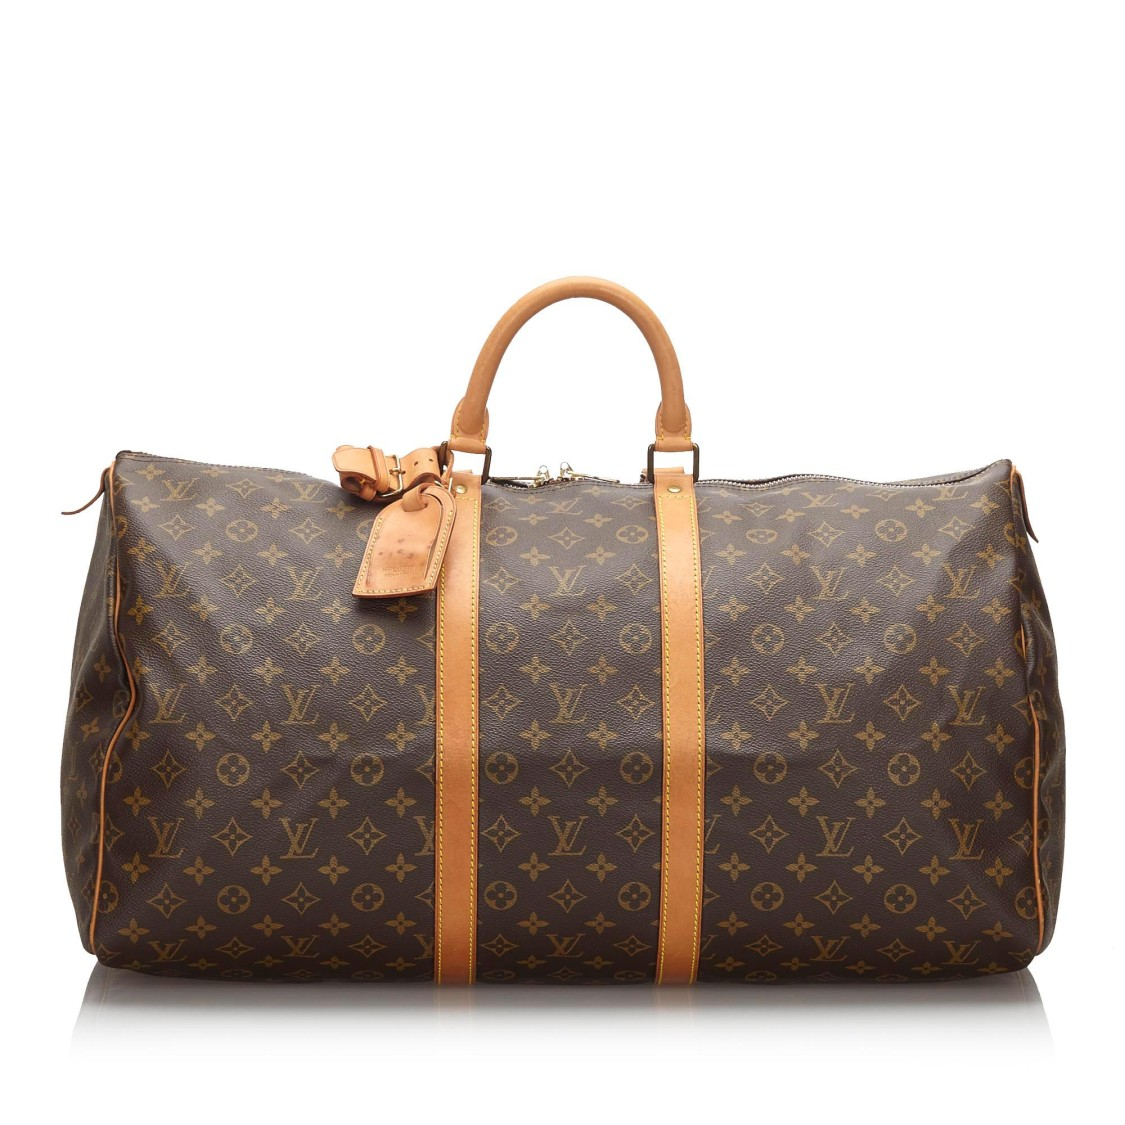 Louis Vuitton Monogram Keepall 55 In Grey